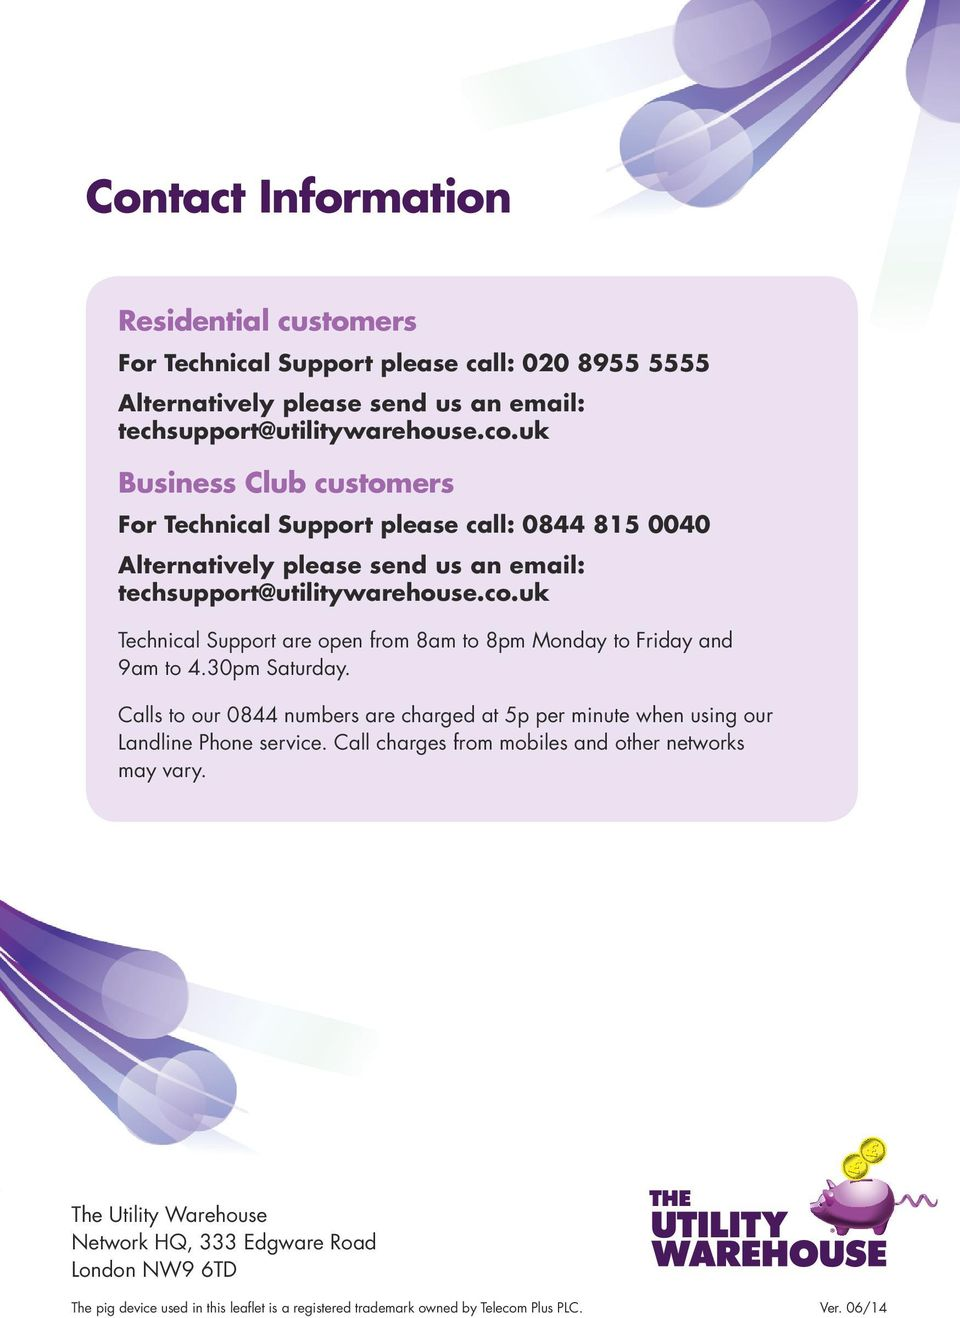 uk Technical Support are open from 8am to 8pm Monday to Friday and 9am to 4.30pm Saturday.